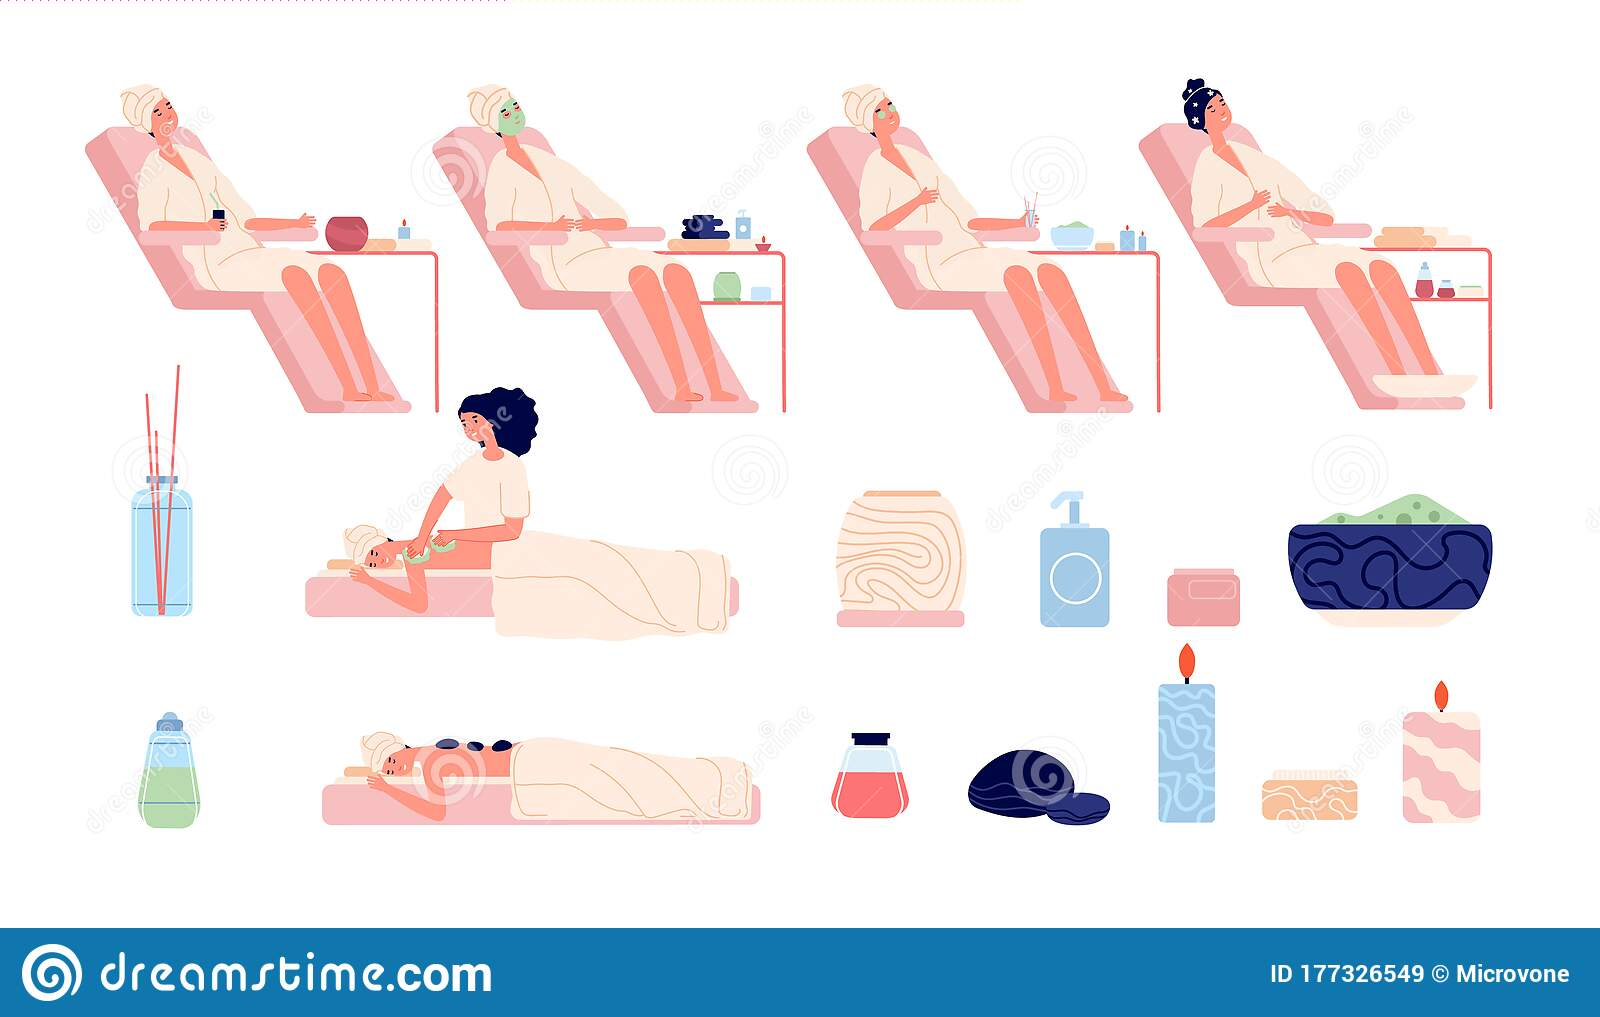 Wellness Center Foot Spa Health Nature Bath Beautiful Visitor Stone Massage And Aromatherapy Isolated Body Skincare Stock Vector Illustration Of Bamboo Flower 177326549